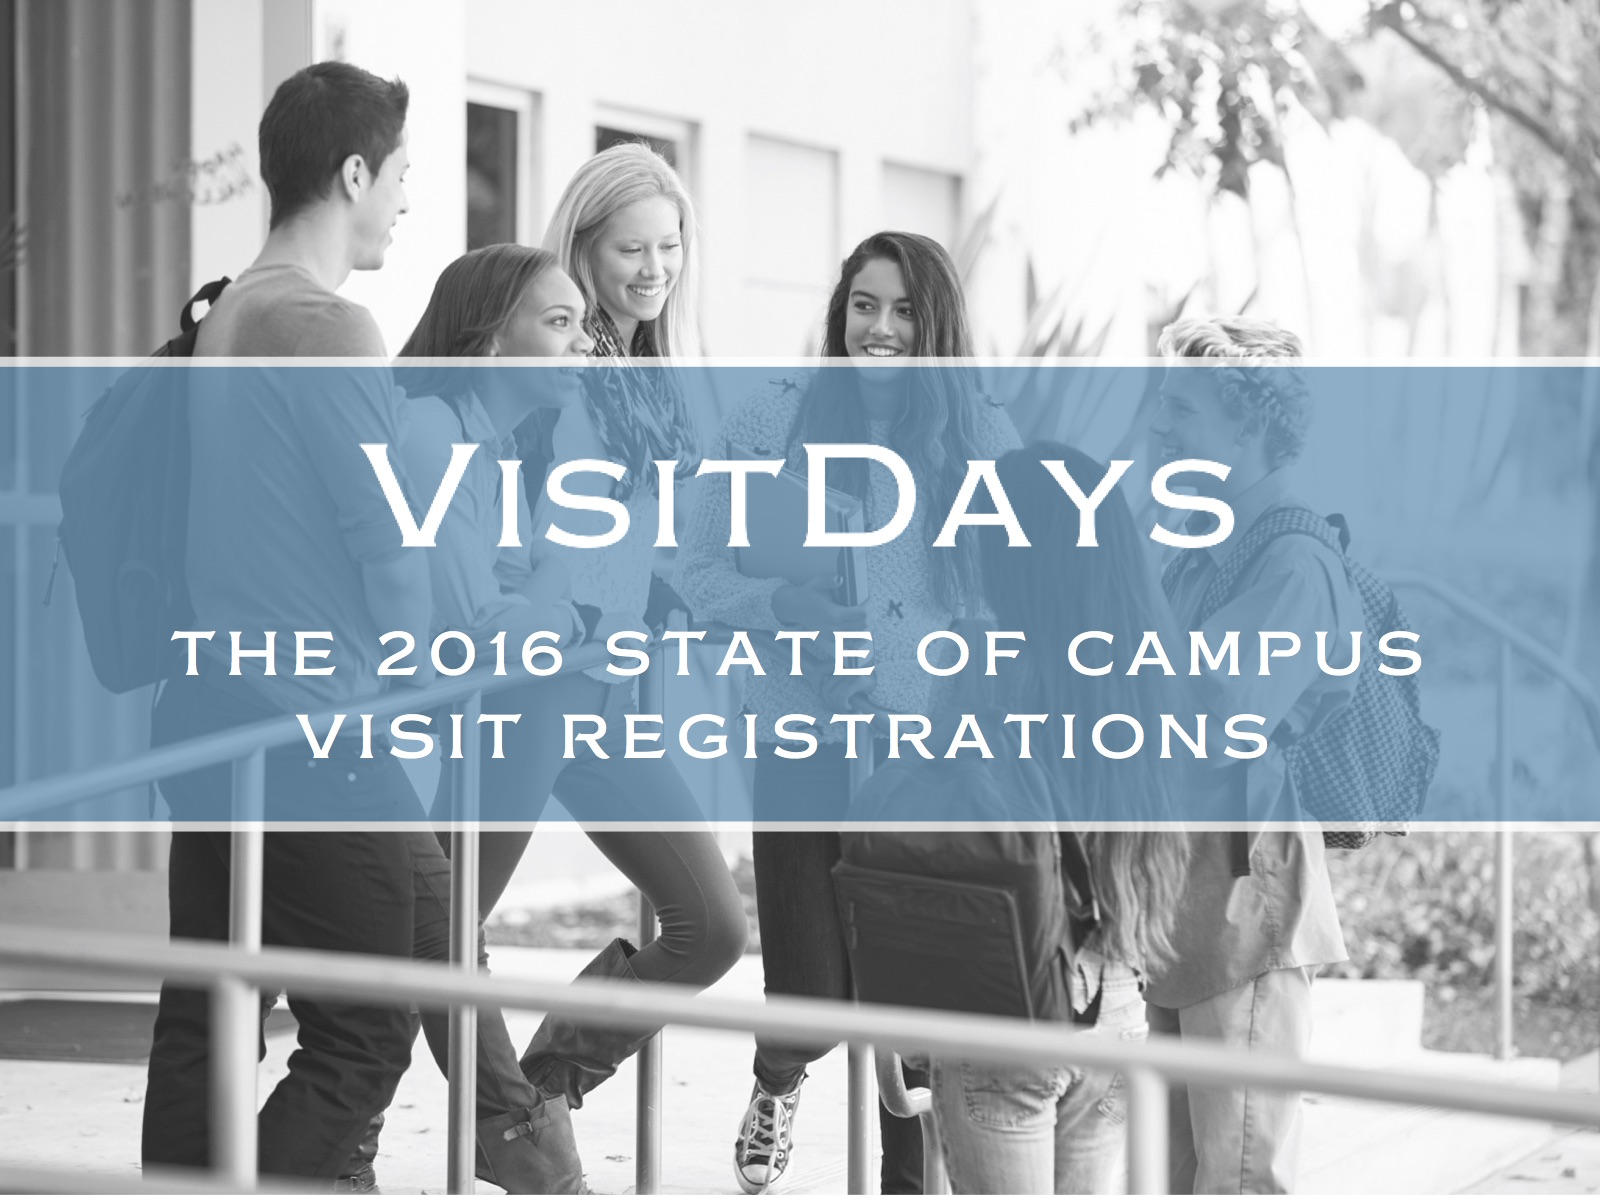 The_2016_State_of_Campus_Visit_Registrations_Cover.jpg